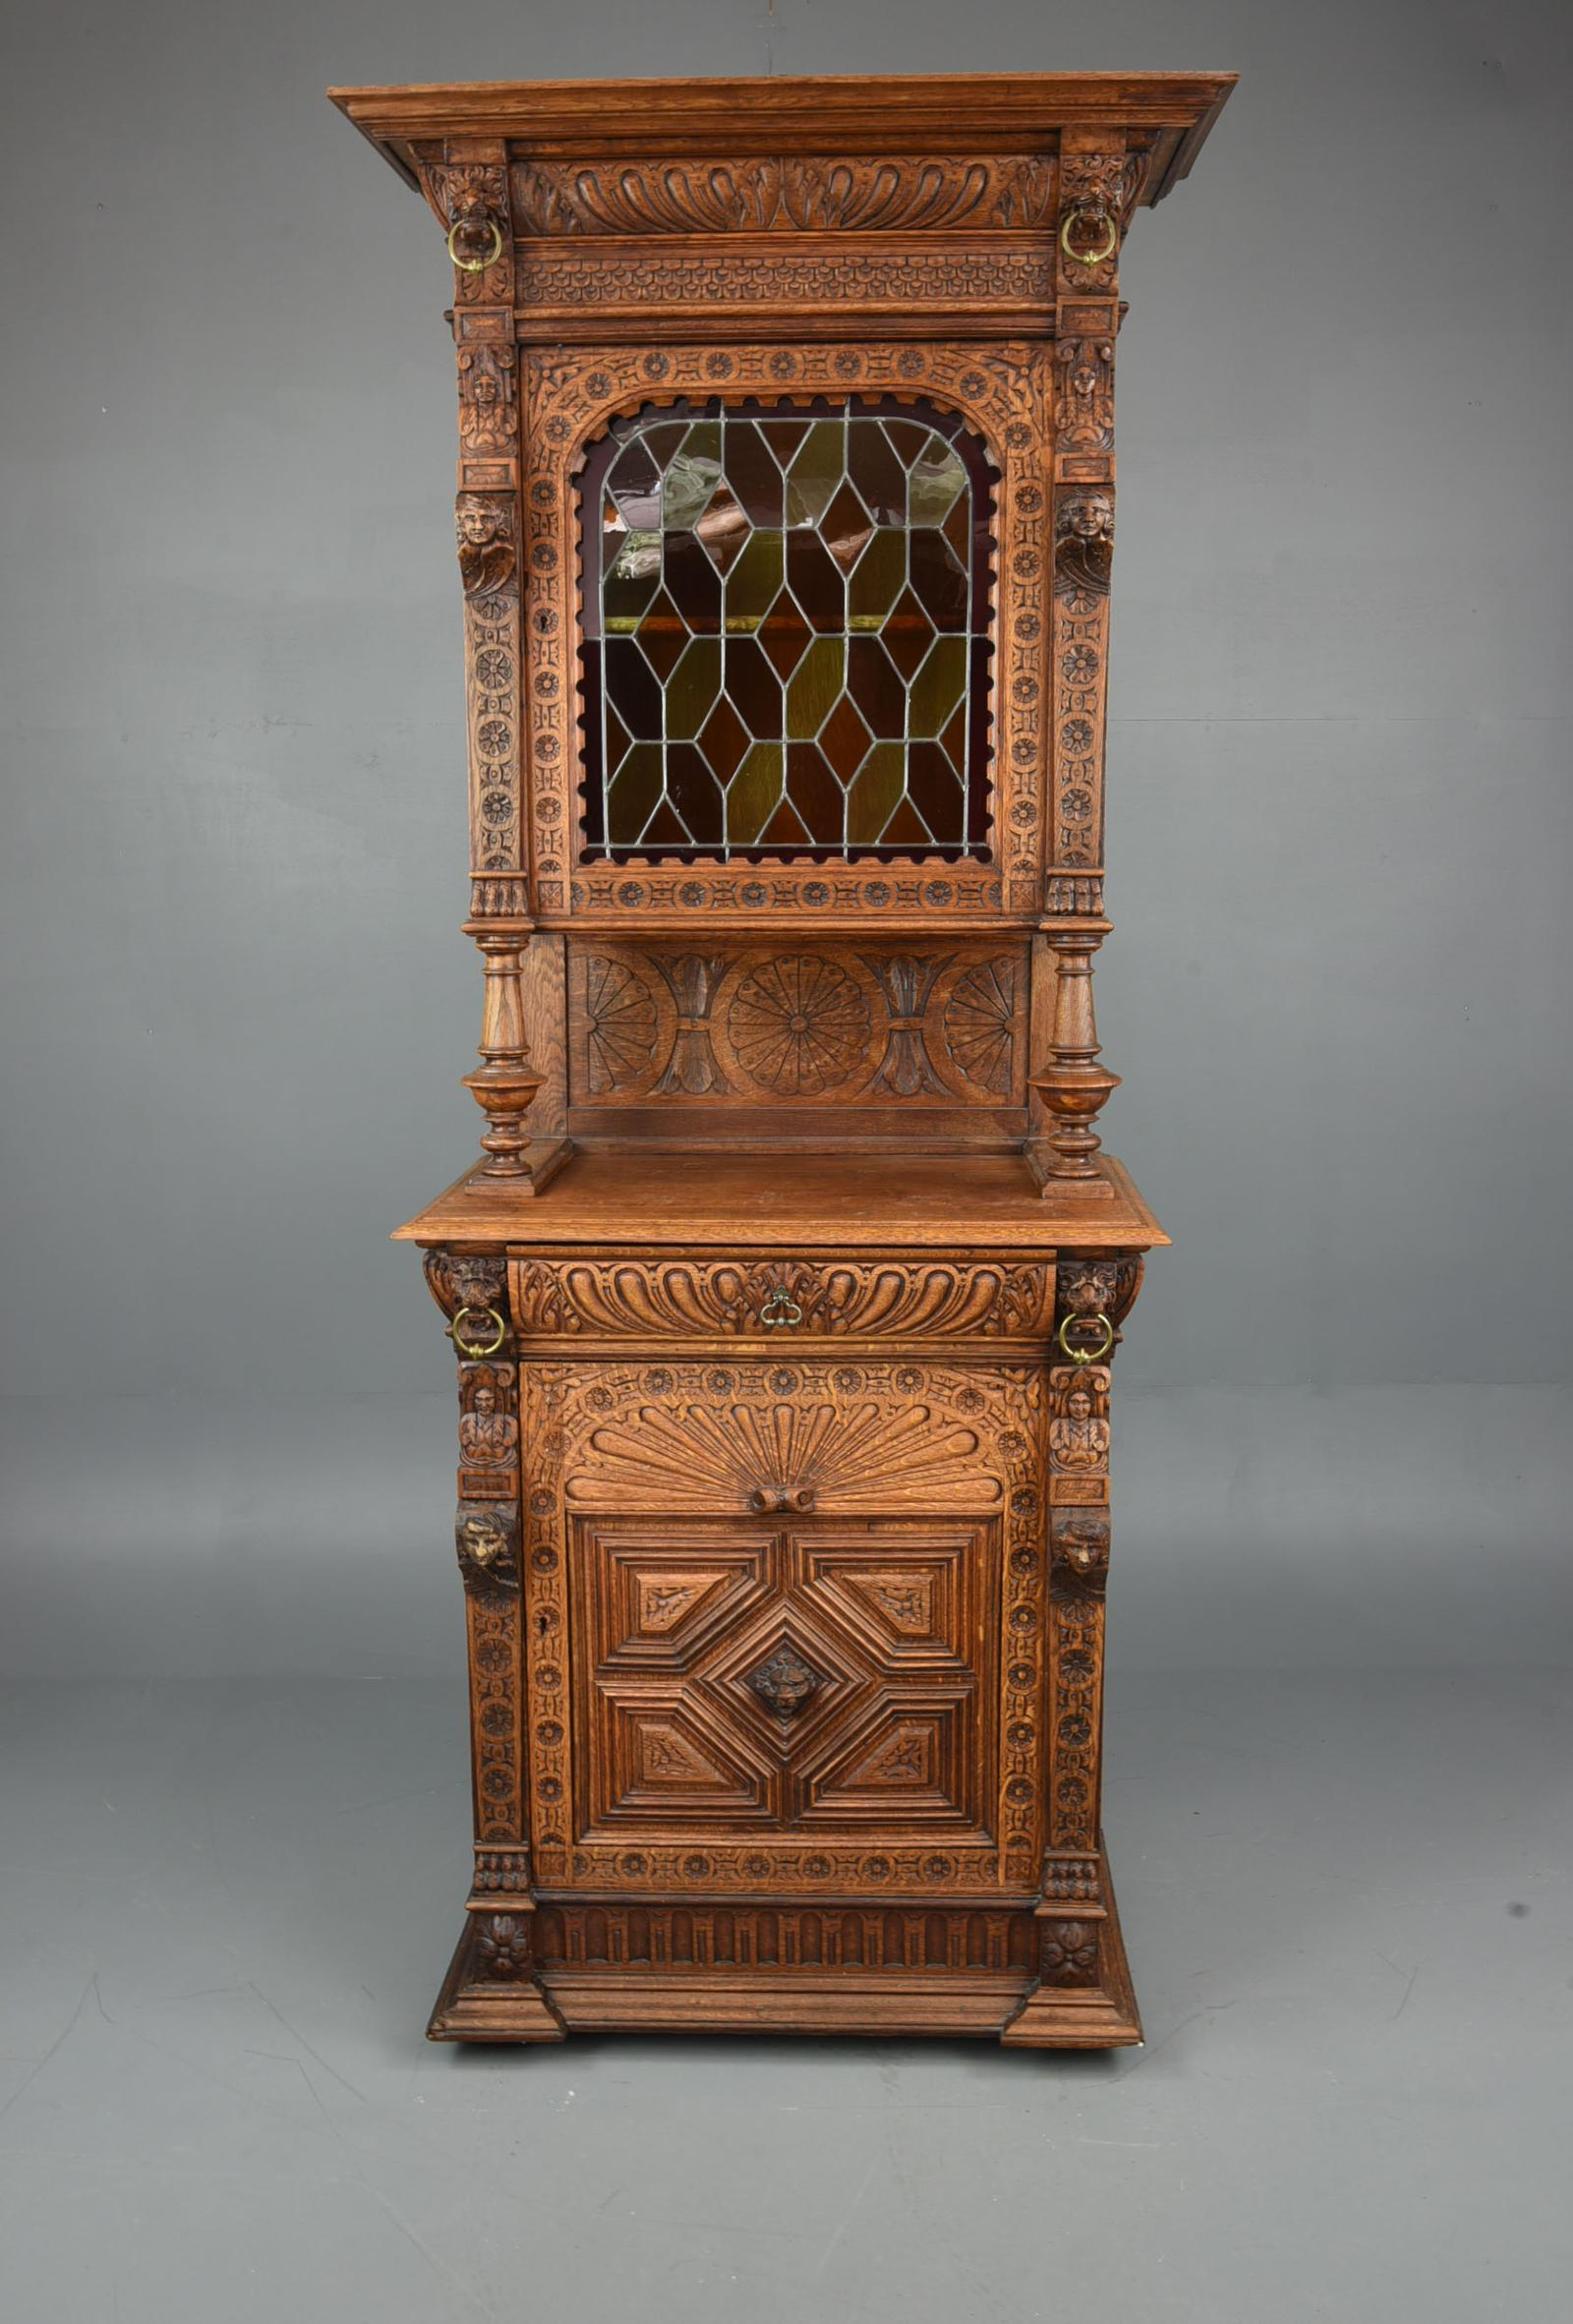 Carved Oak Leaded Glass Bookcase Cabinet (1 of 1)